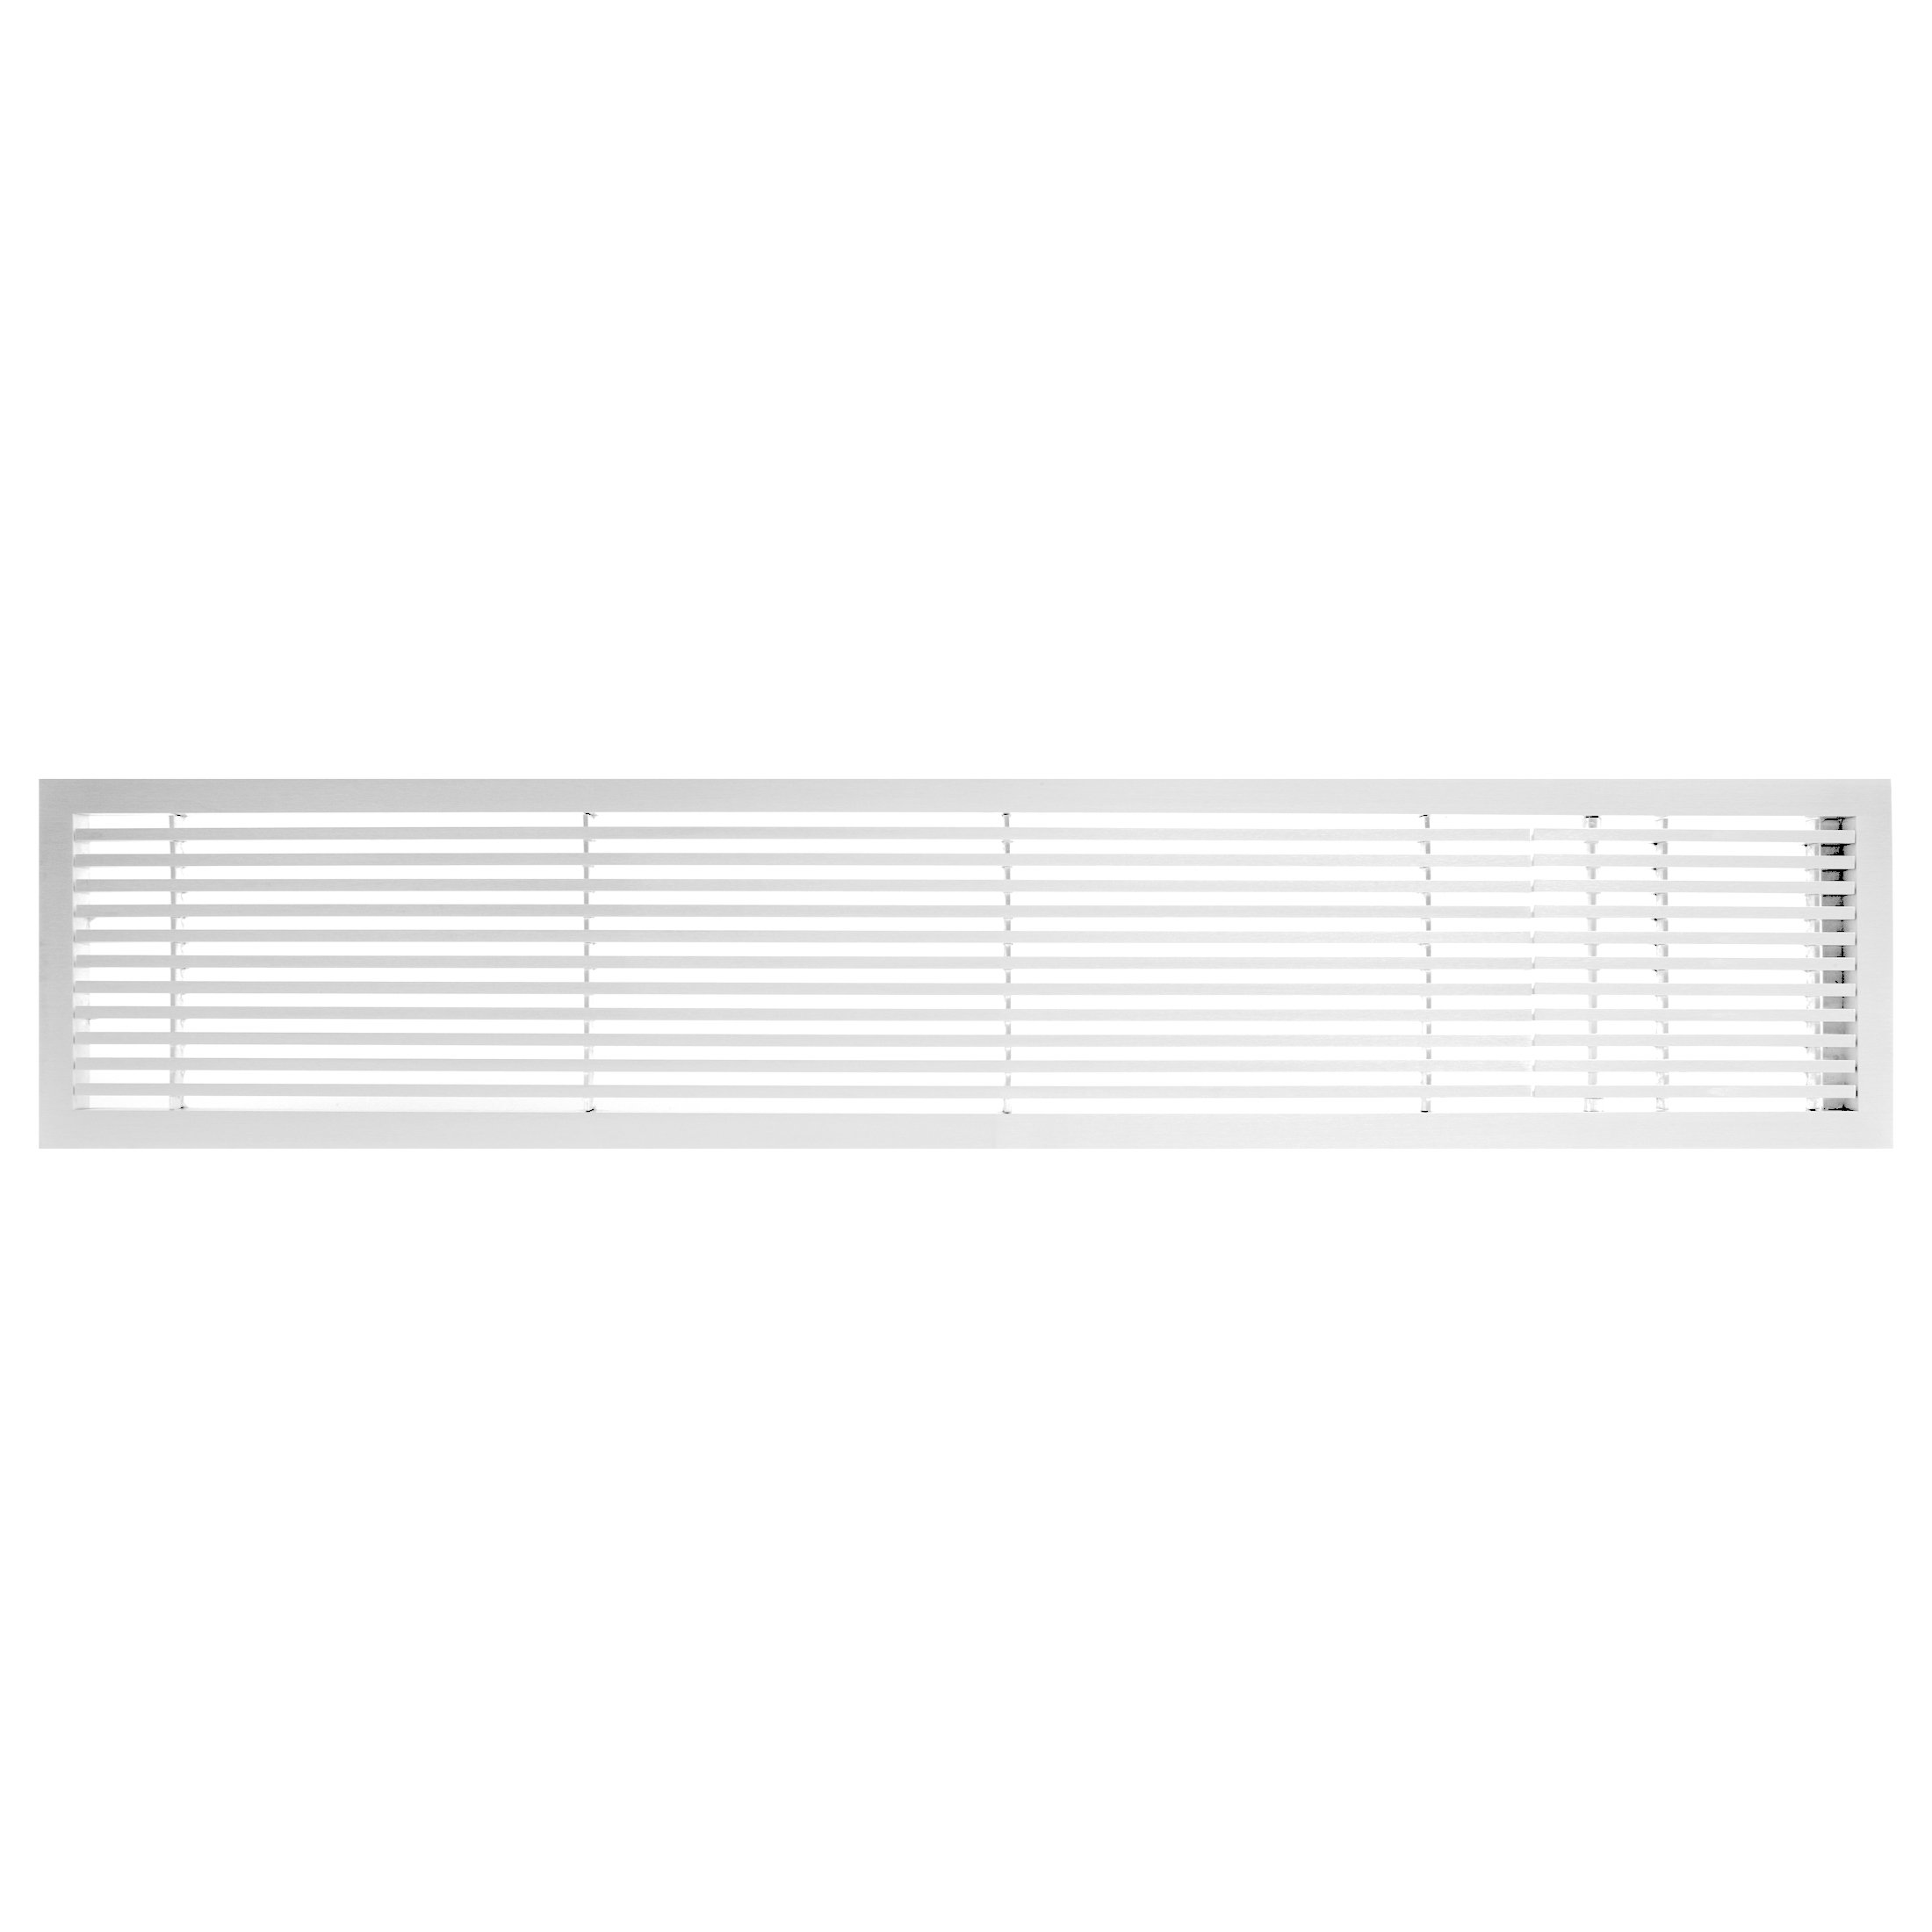 Architectural Grille 200064802 AG20 Series 6'' x 48'' Solid Aluminum Fixed Bar Supply/Return Air Vent Grille, White-Matte